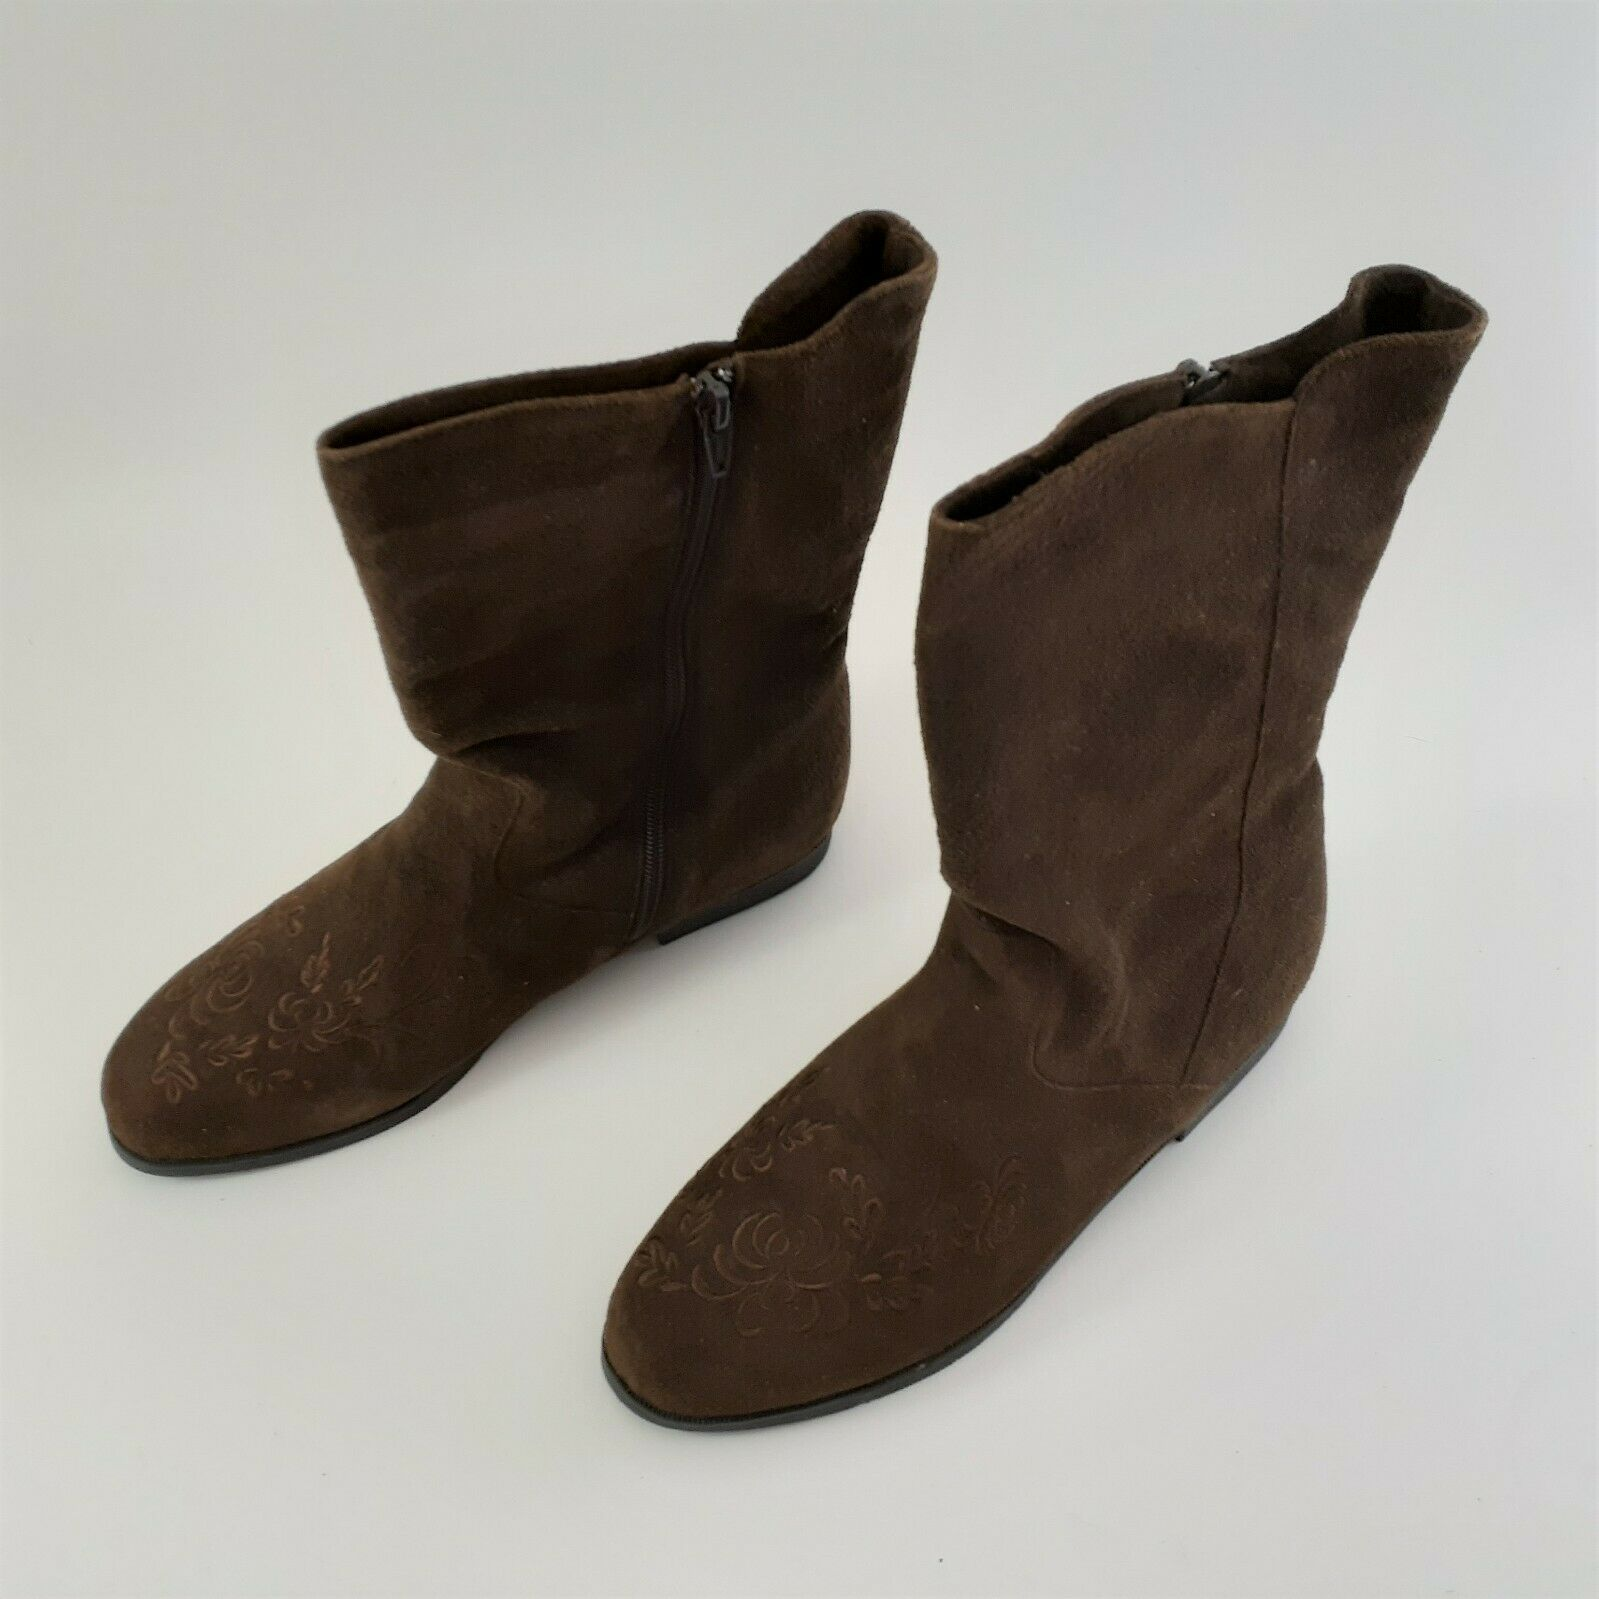 Jack Sprat Brown Suede Genuine Leather Floral Embroidered Sz 10 M Ankle Boots